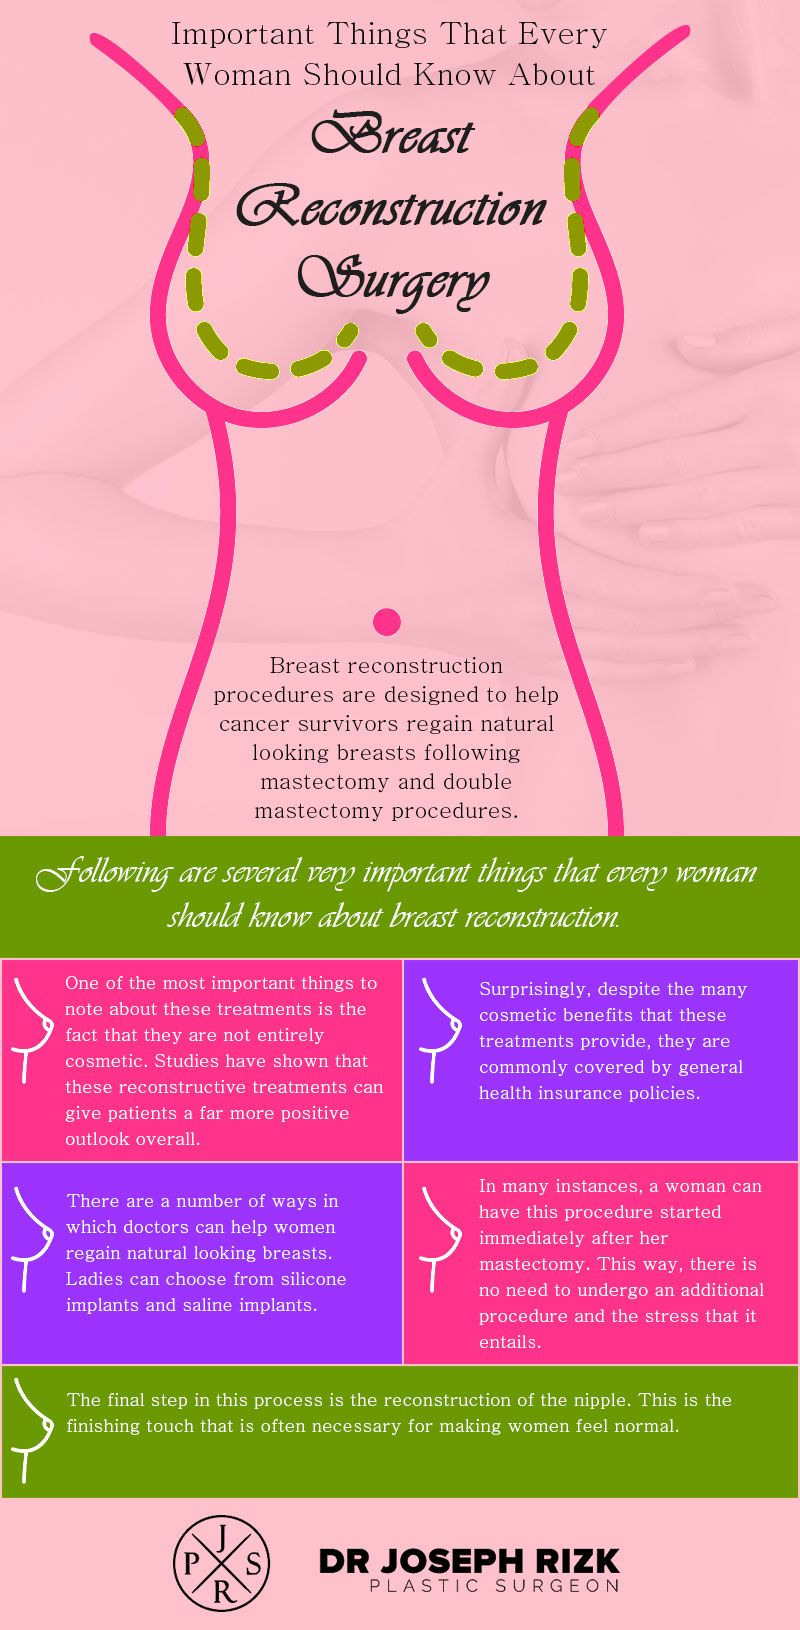 Most Breast Cancer Patients Have Help Choosing Treatments recommend